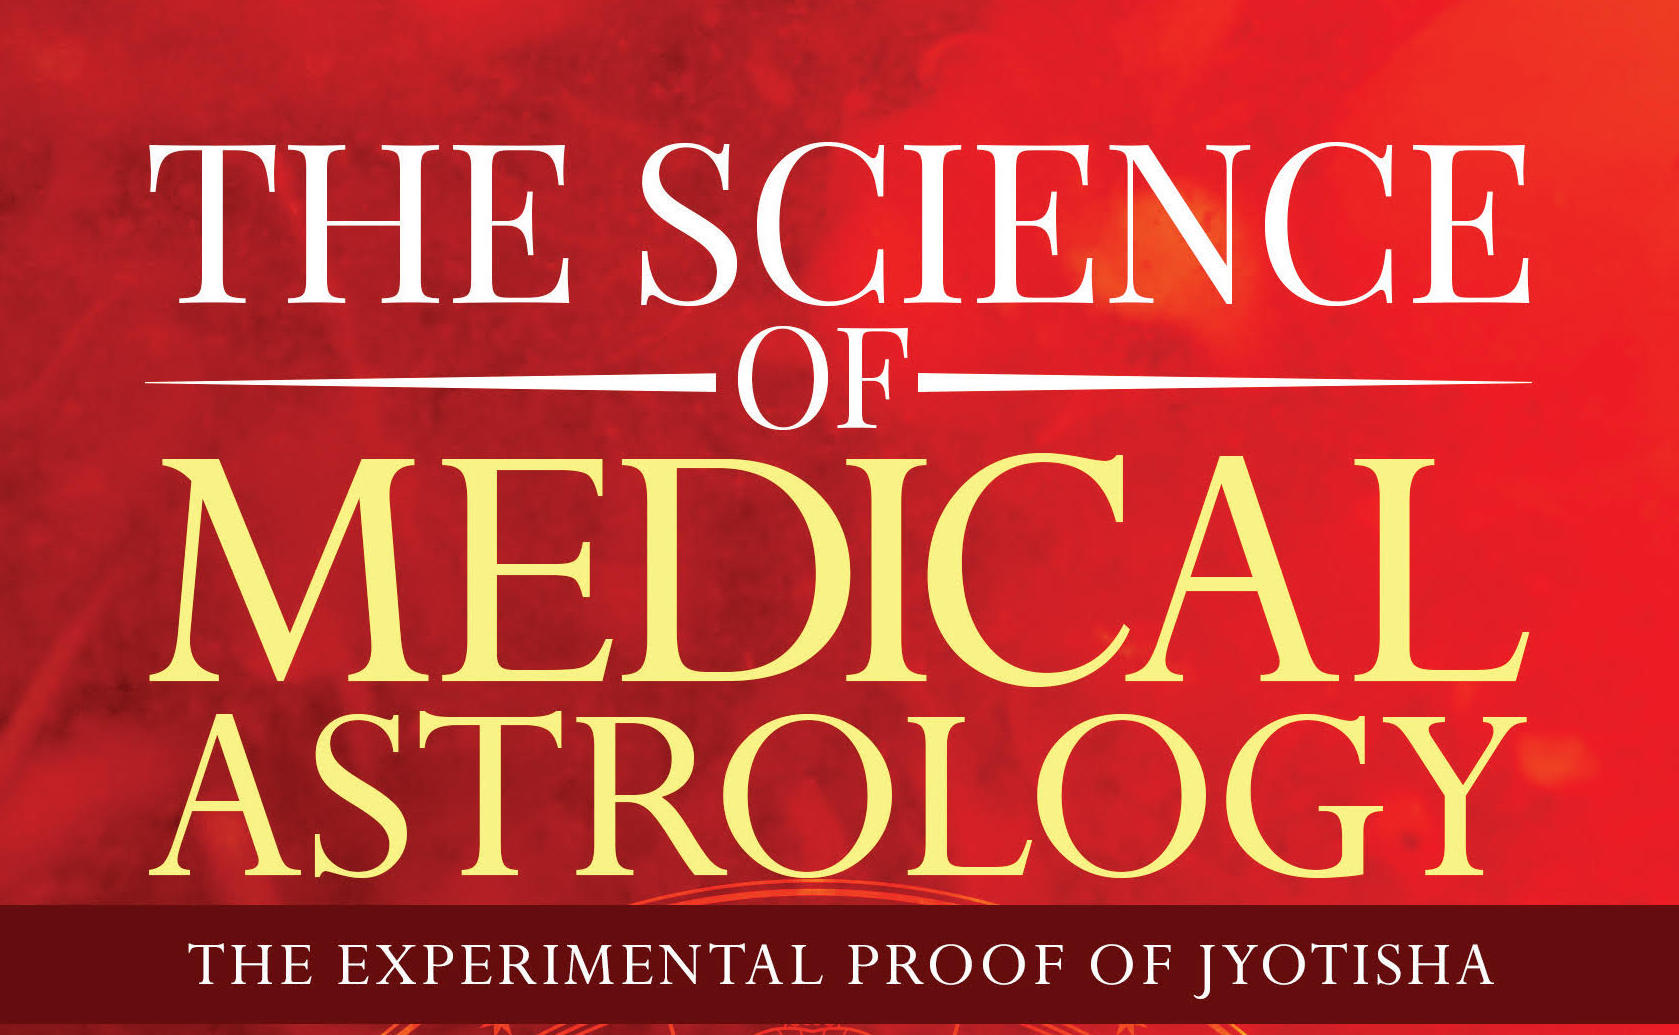 New Book Release: 'The Science of Medical Astrology'